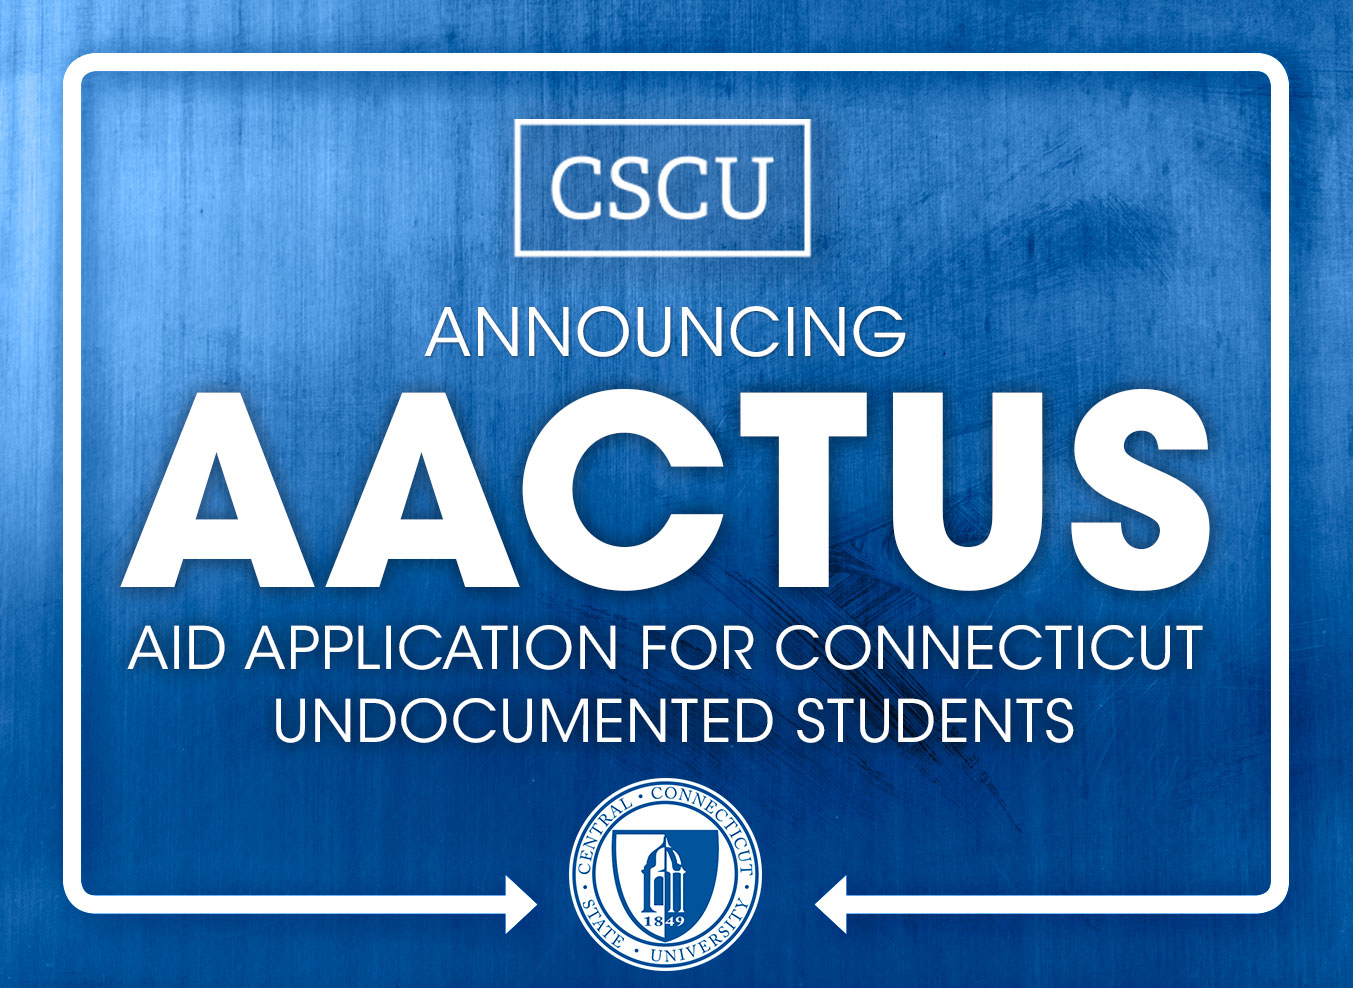 Now available: Aid Application for CT Undocumented Students